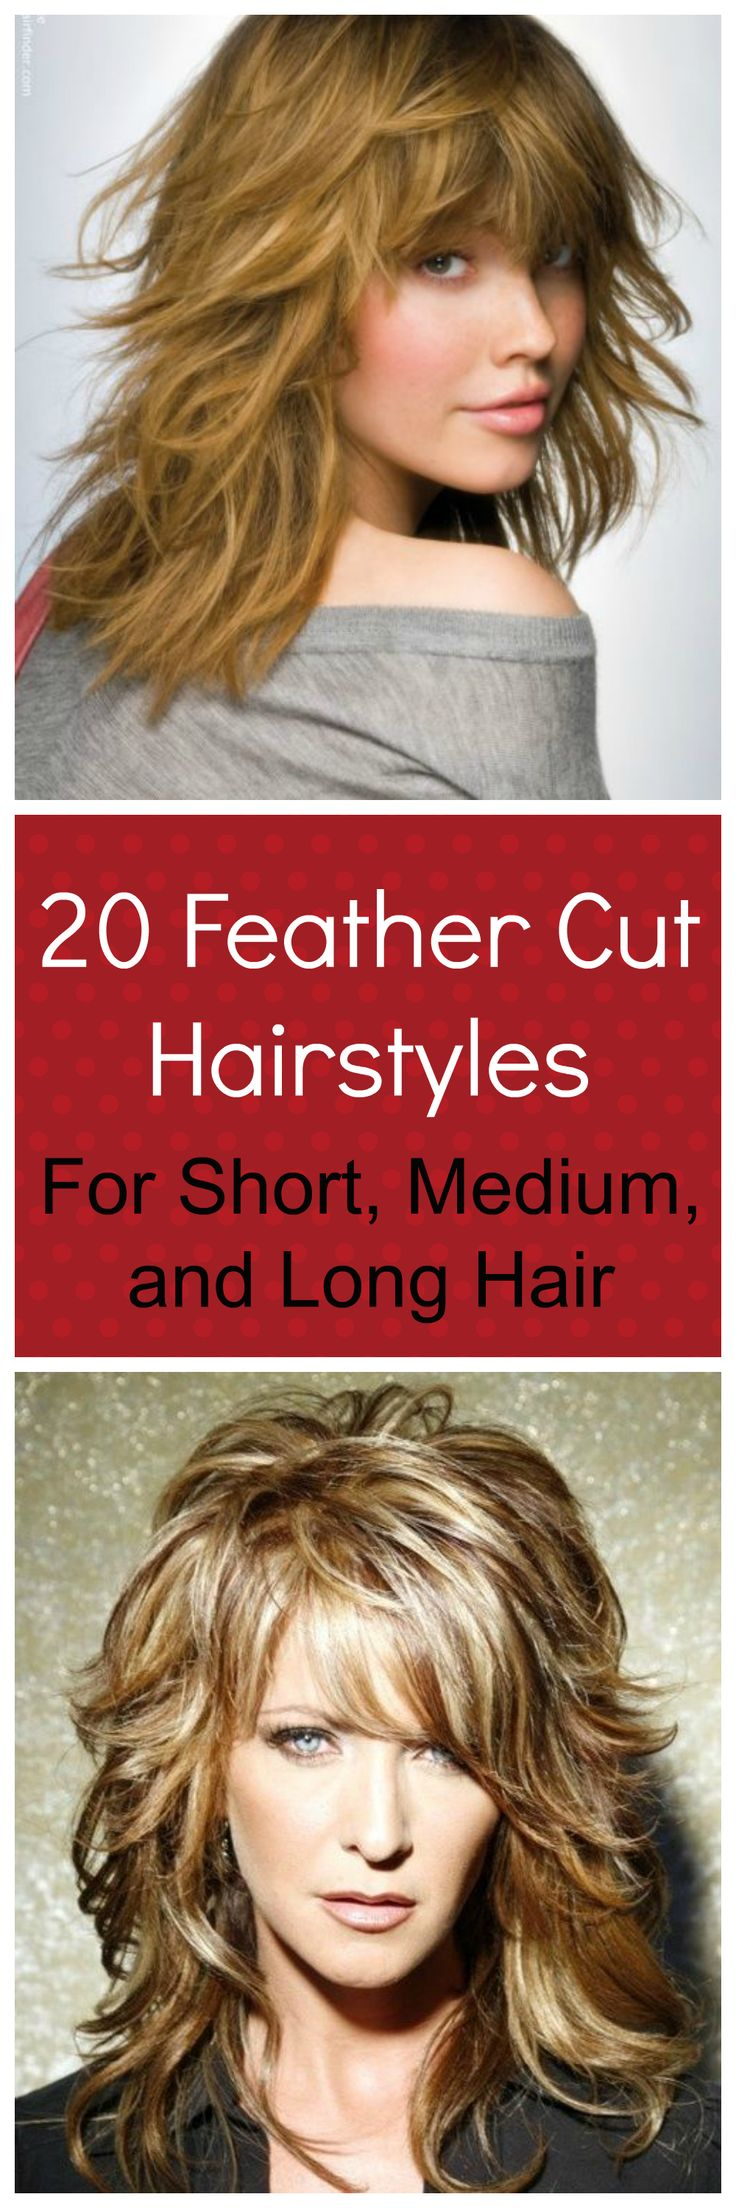 20 feather cut hairstyles for long, medium, and short hair. Whatever your hair length, there is something in these layered hairstyles and feathered hair looks for you.